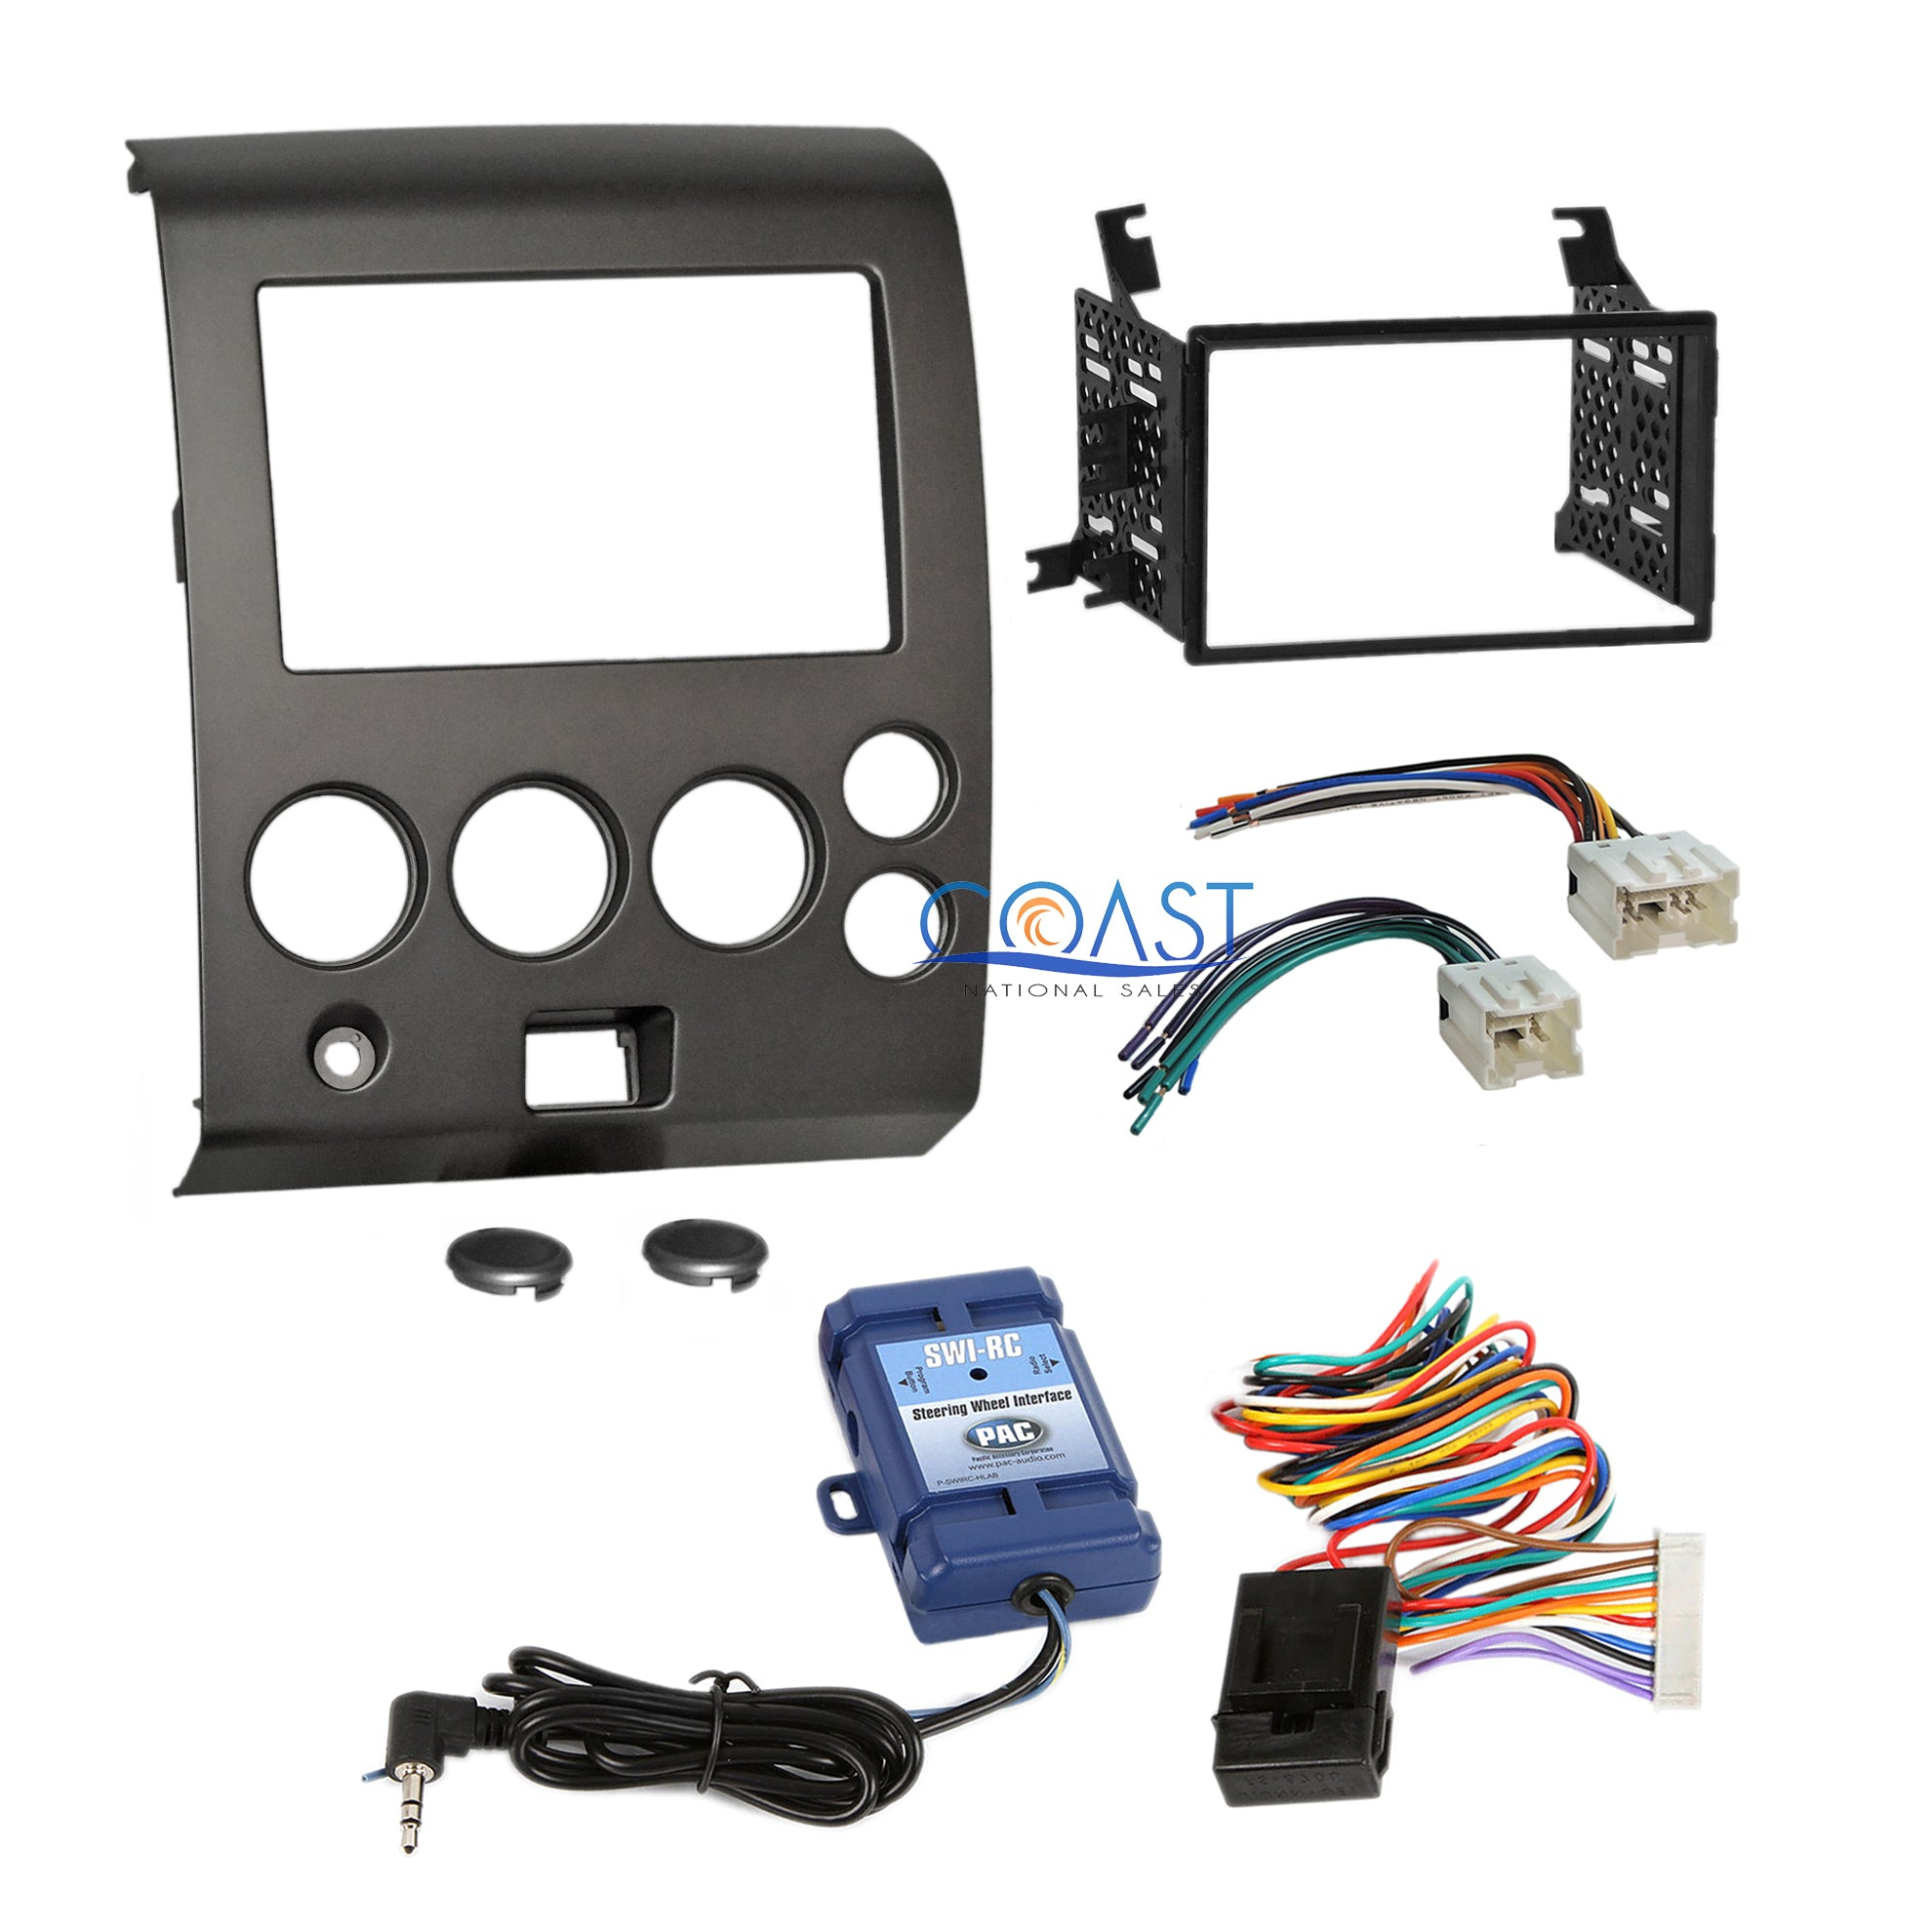 Car Radio Stereo Dash Kit & Steering Wheel Harness for 04+ Nissan Armada on